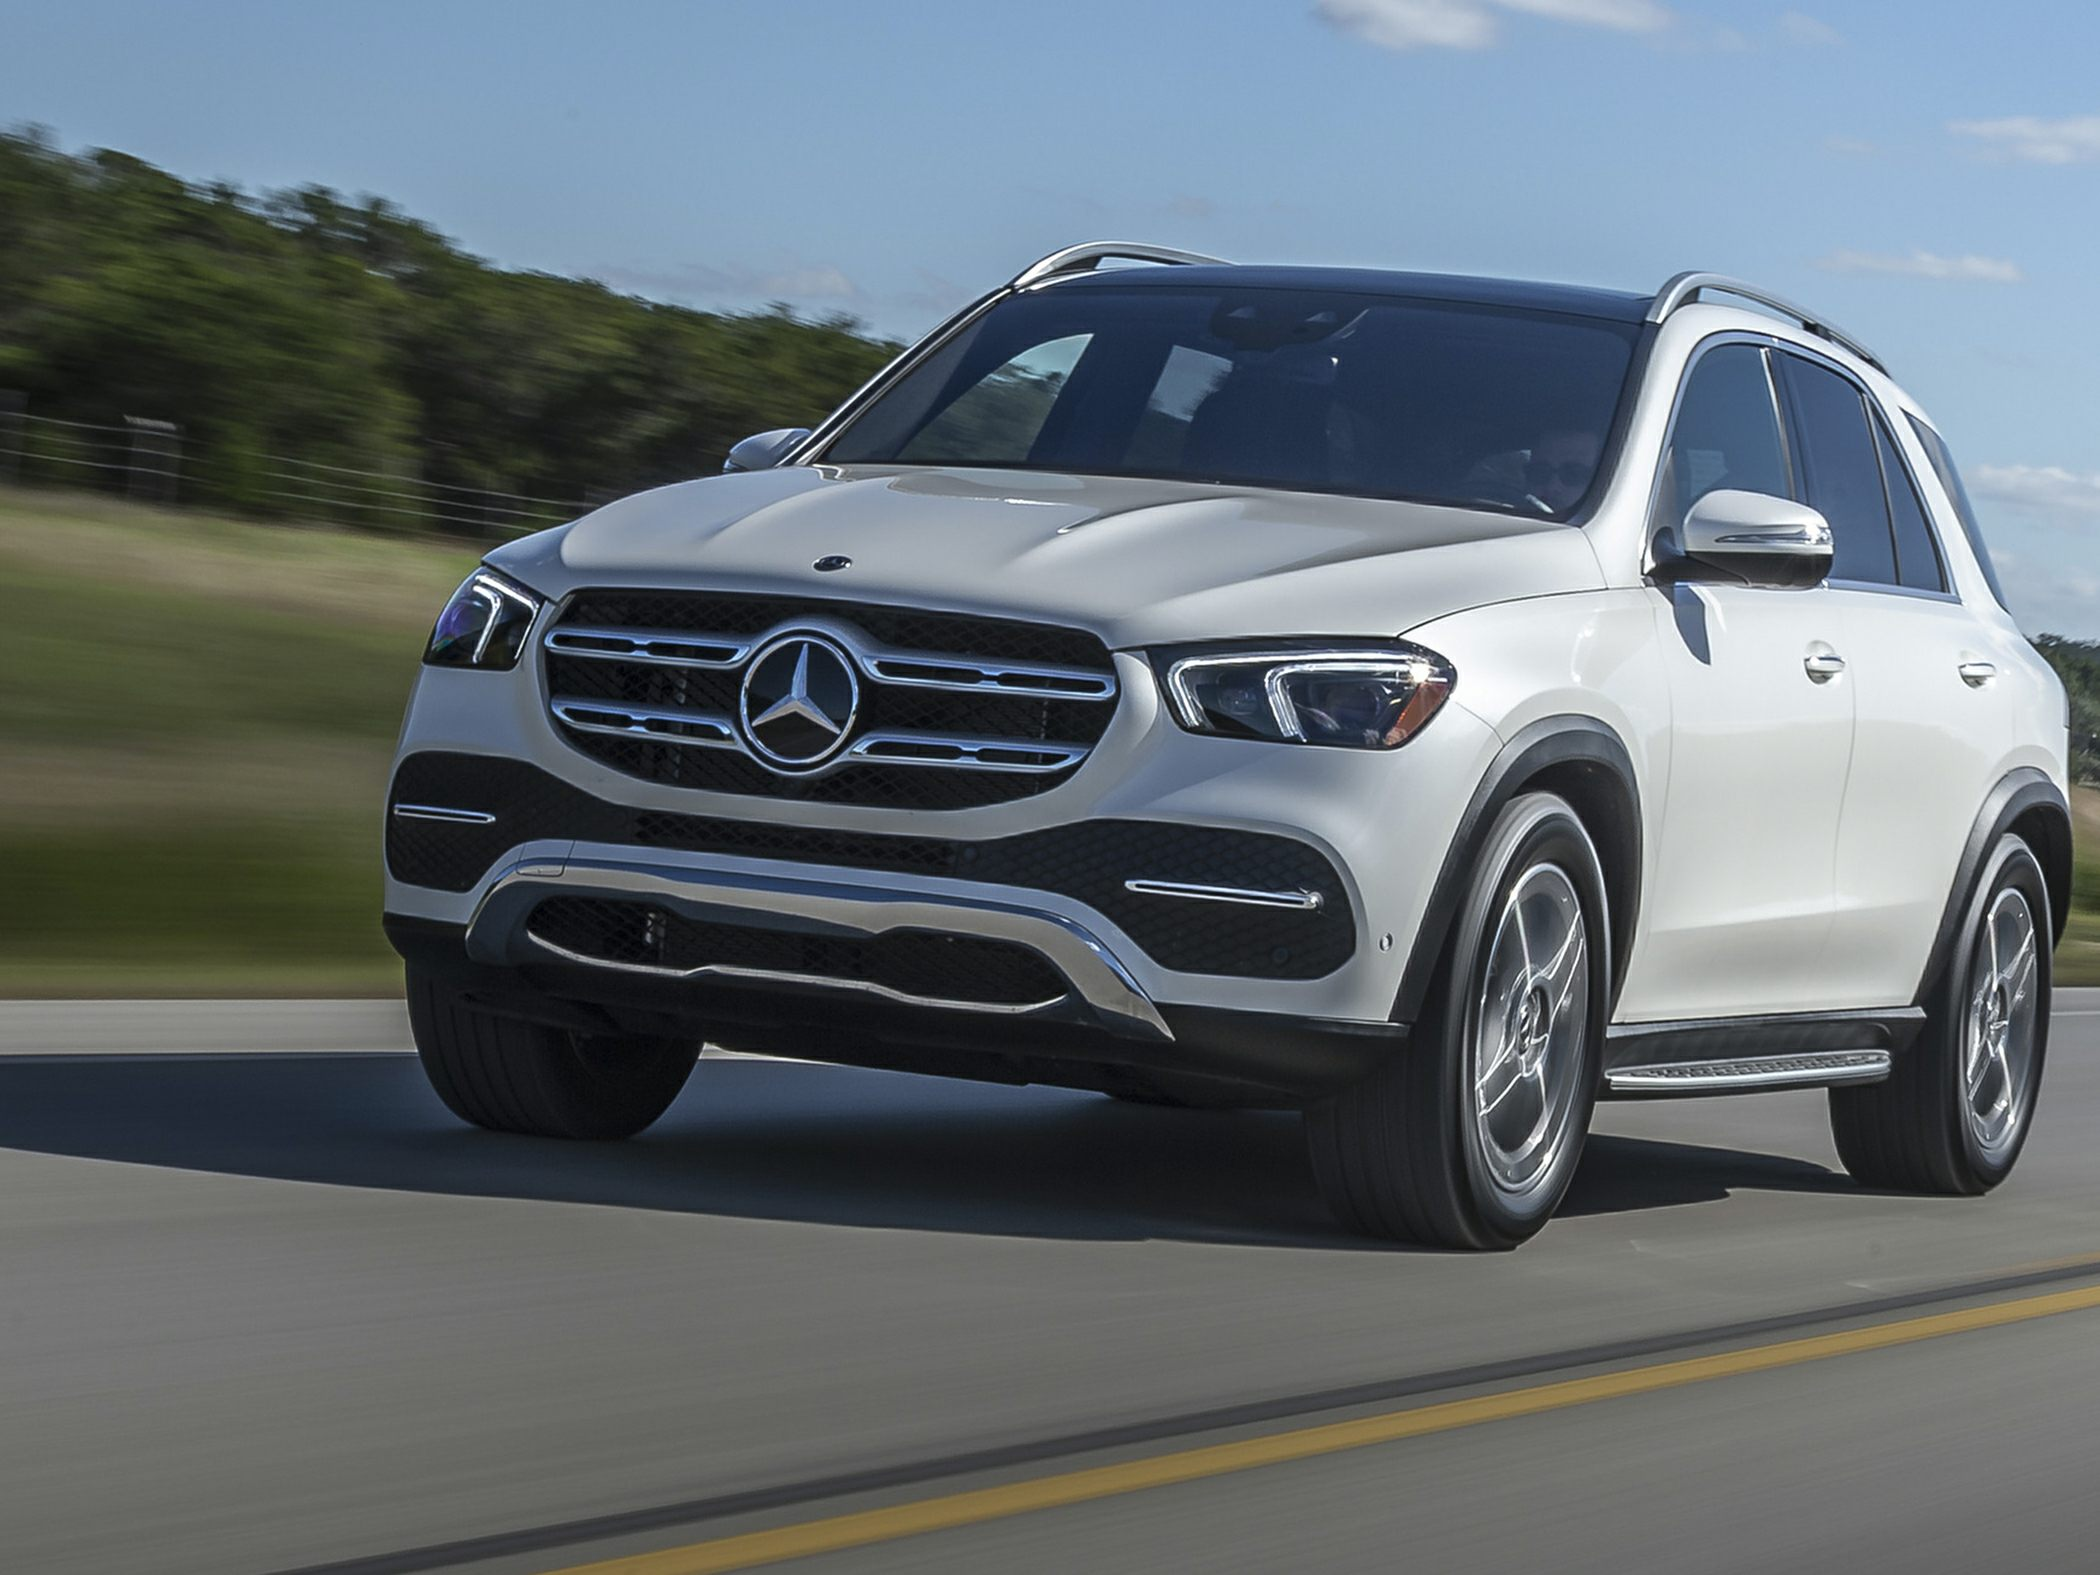 2020 Mercedes-Benz GLE 580 Specs and Prices